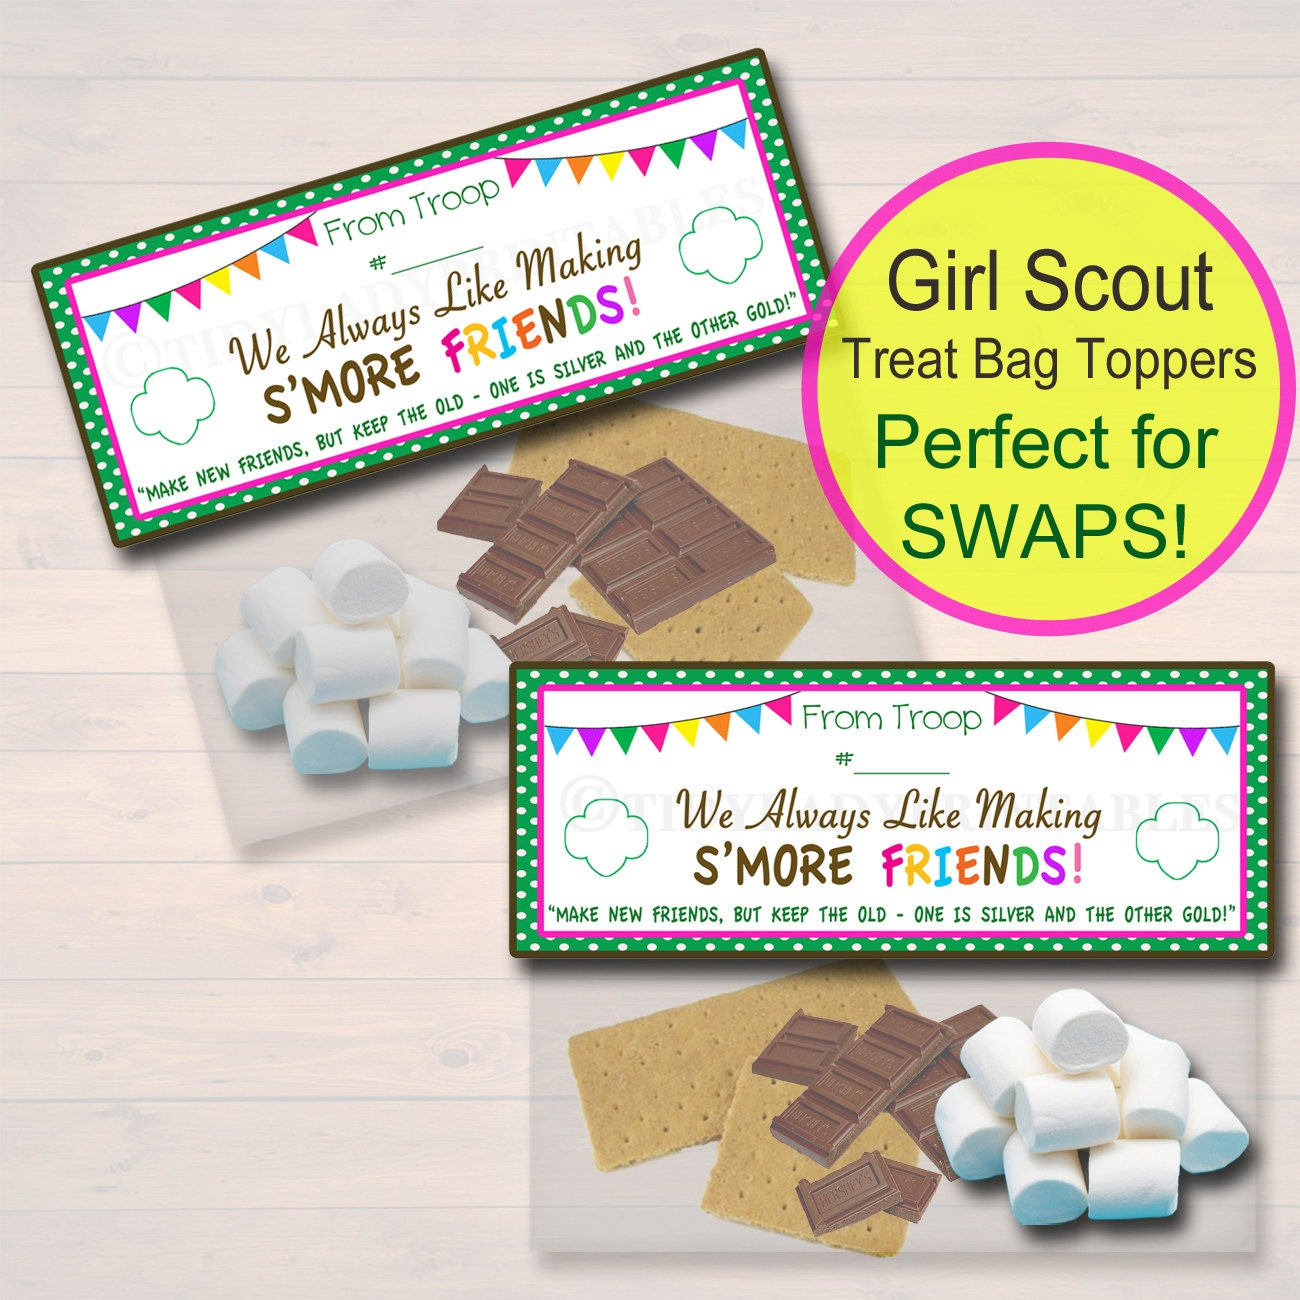 Girl scout scrapbook ideas - Girl Scout S Mores Treat Bag Toppers Girl Scout Crafts Girl Scout Swap Ideas Instant Download Girl Scout Camping Girl Scout Printables